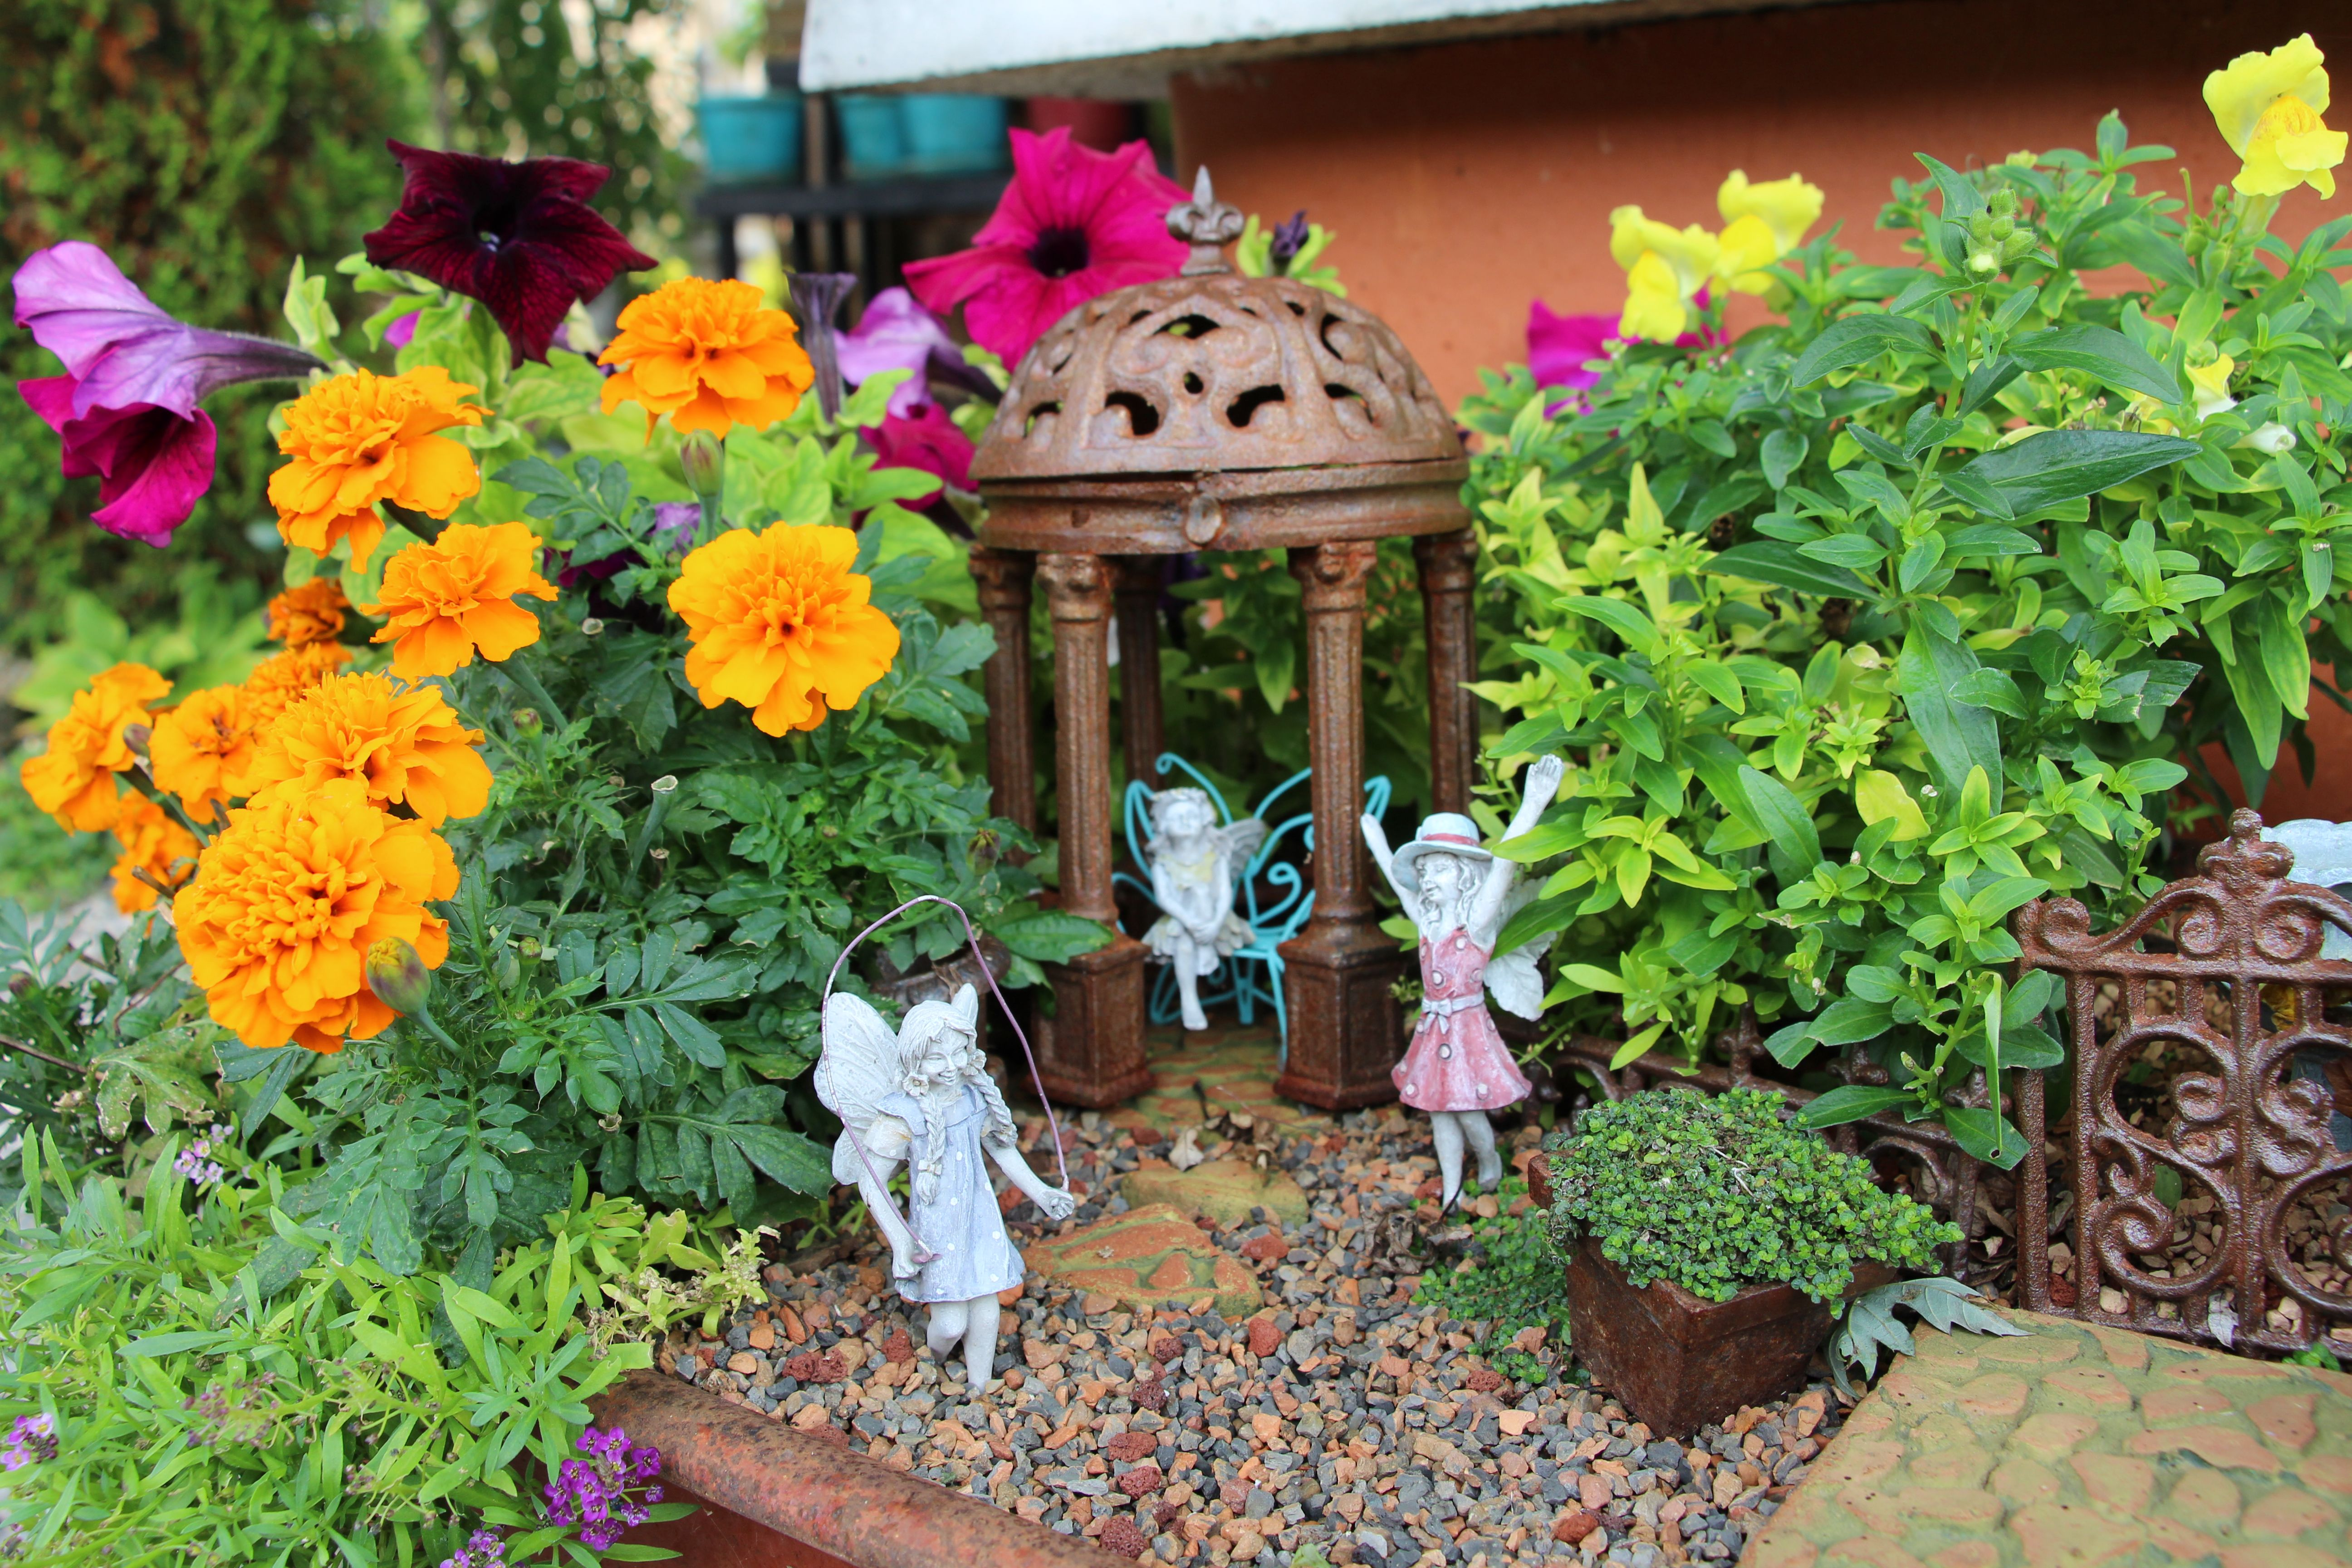 Outdoor Fairy Garden, Including Fun Annuals For Color Is A Great Way To  Brighten Up